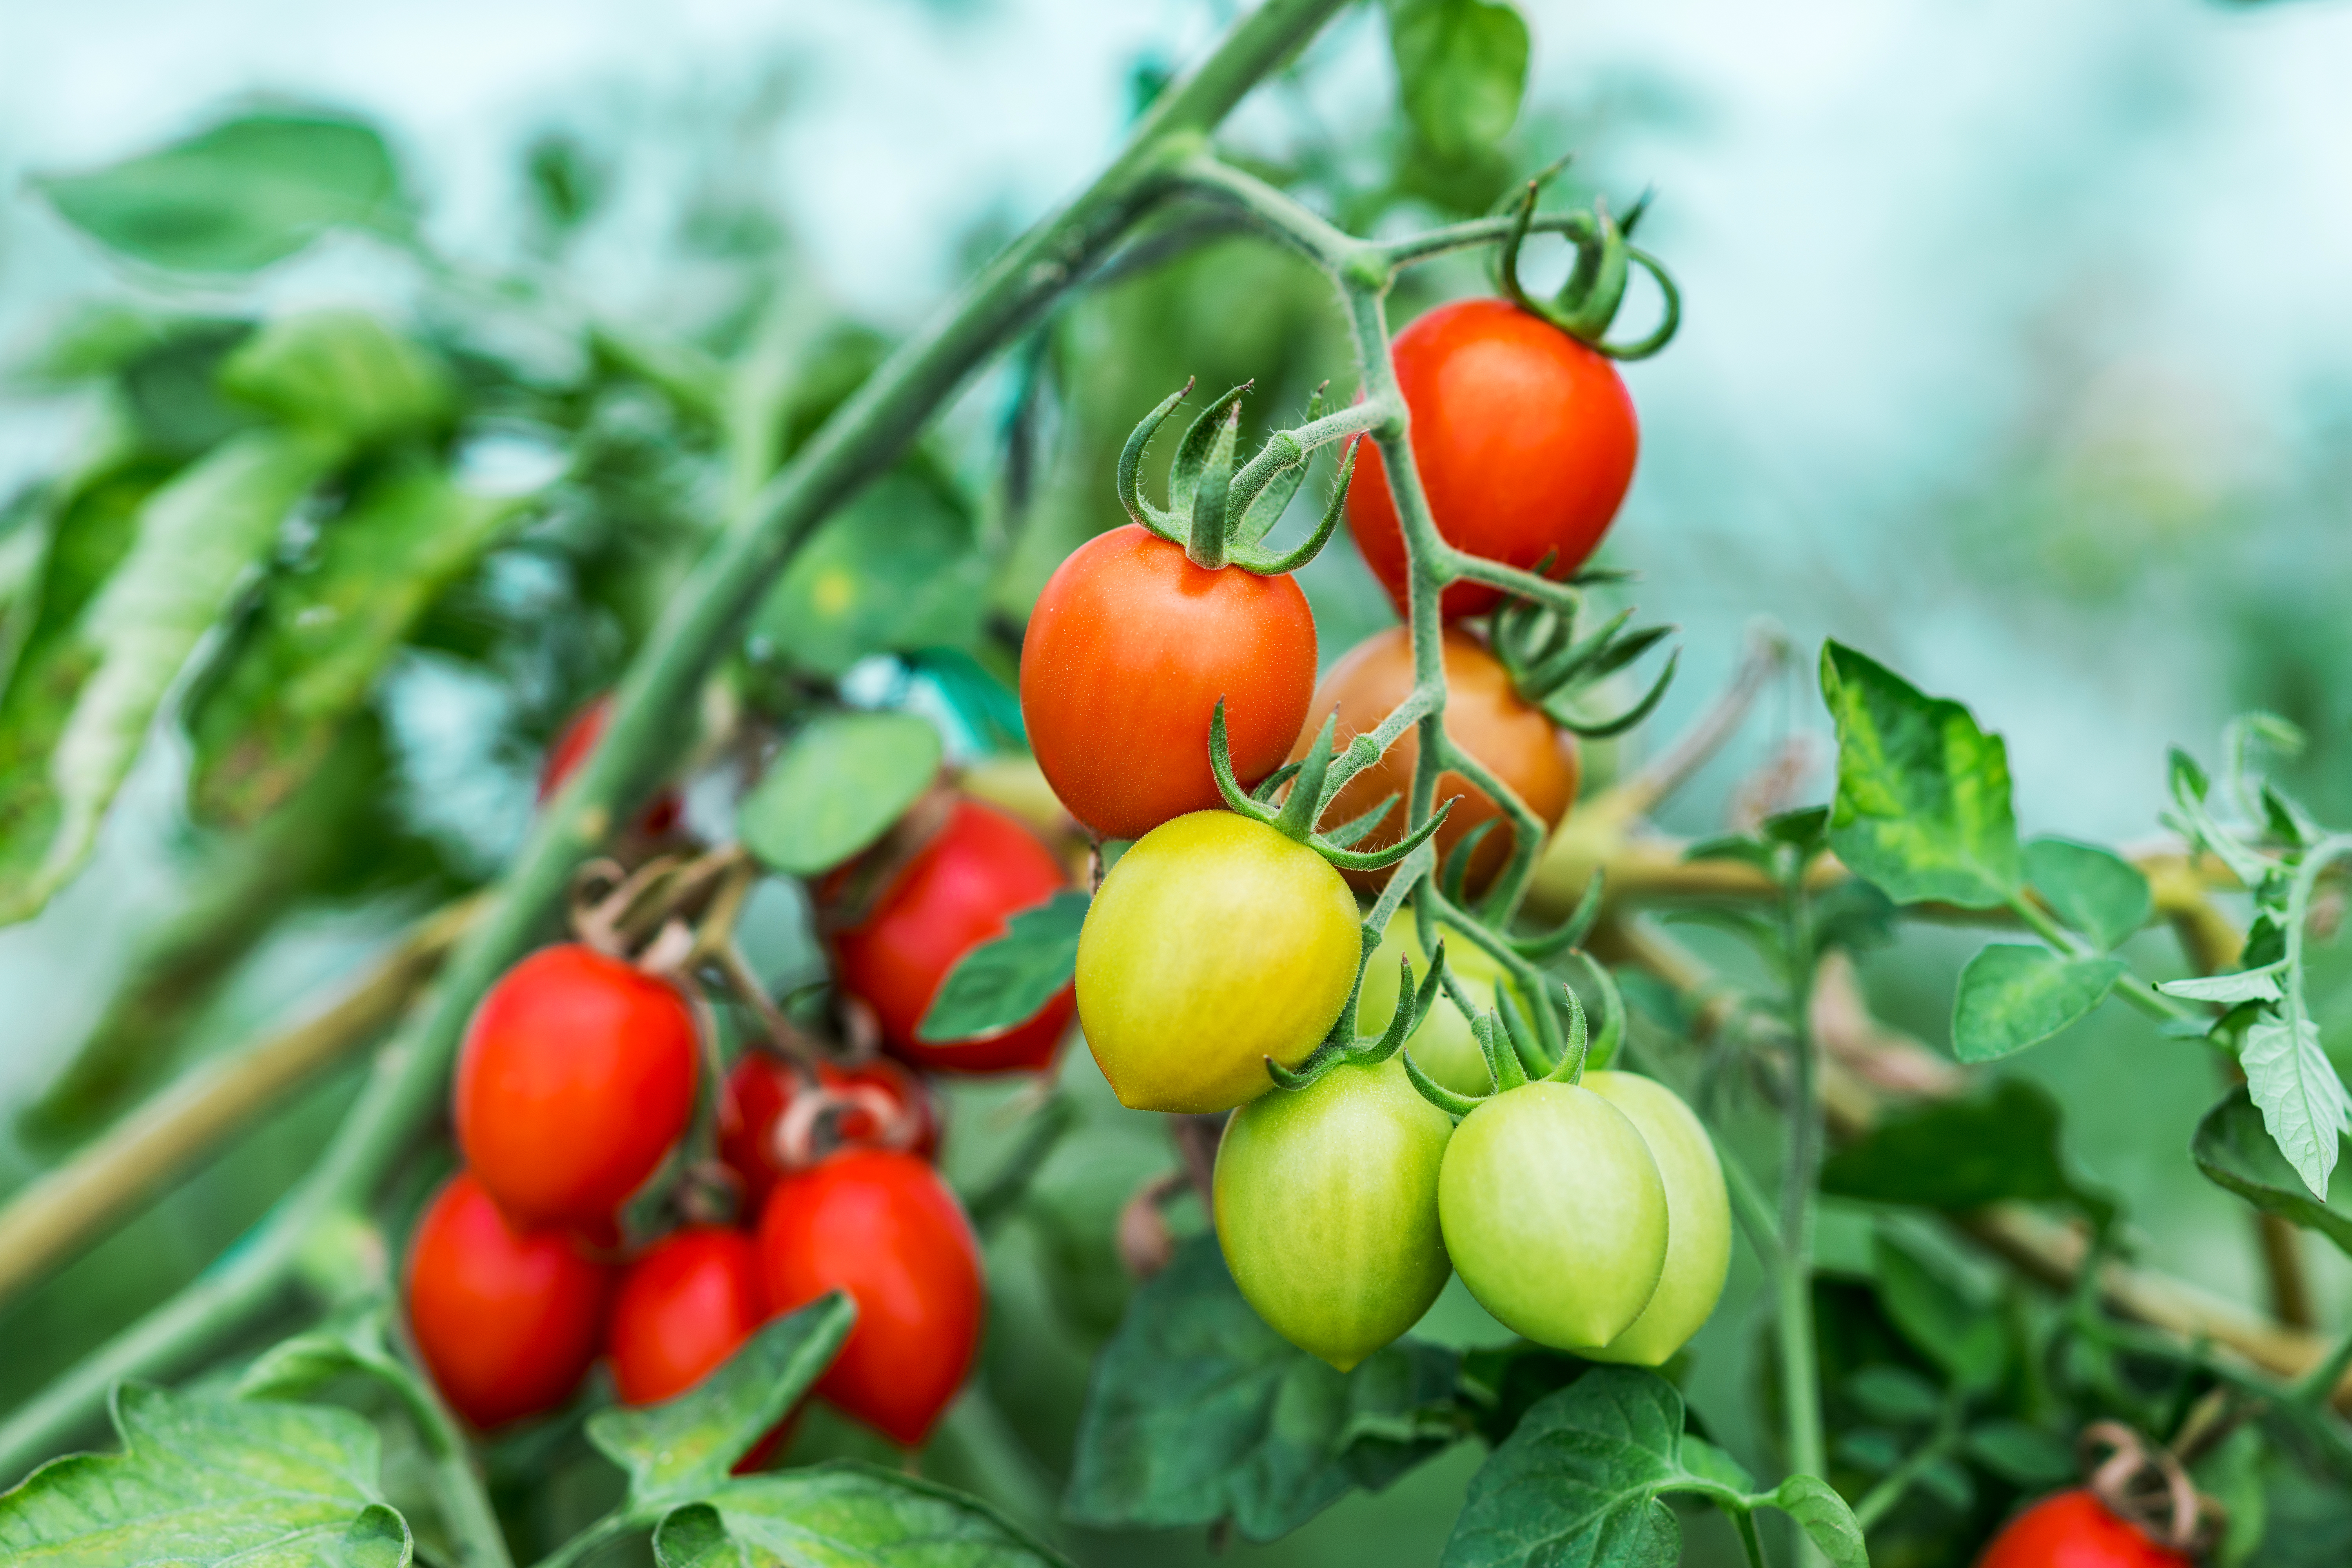 Natural Ways to Kill Blight on Tomatoes | Home Guides | SF Gate